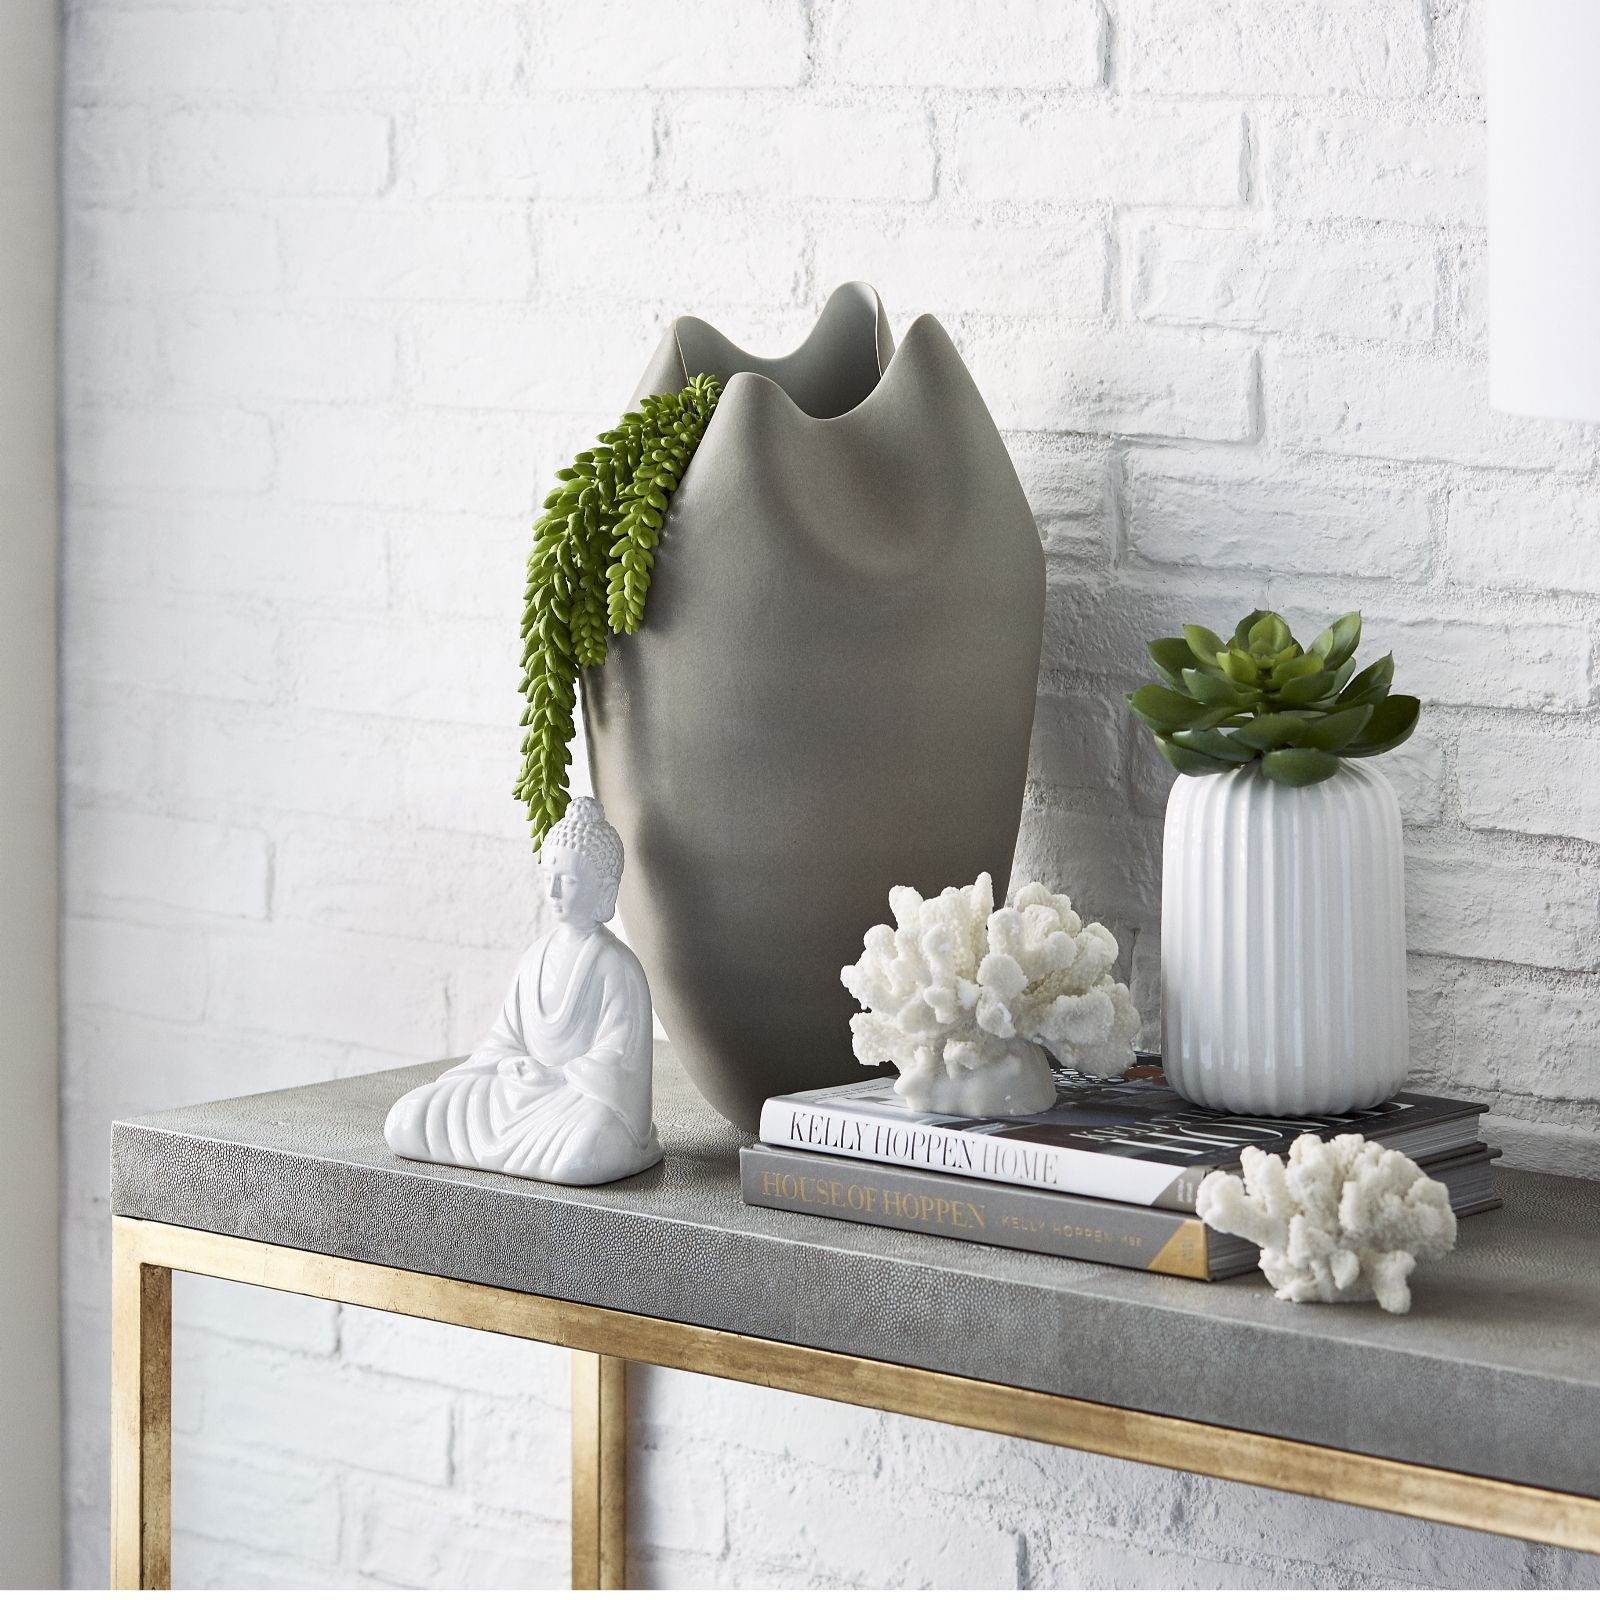 K by kelly hoppen tall pinched porcelain vase qvc uk reviewsmspy